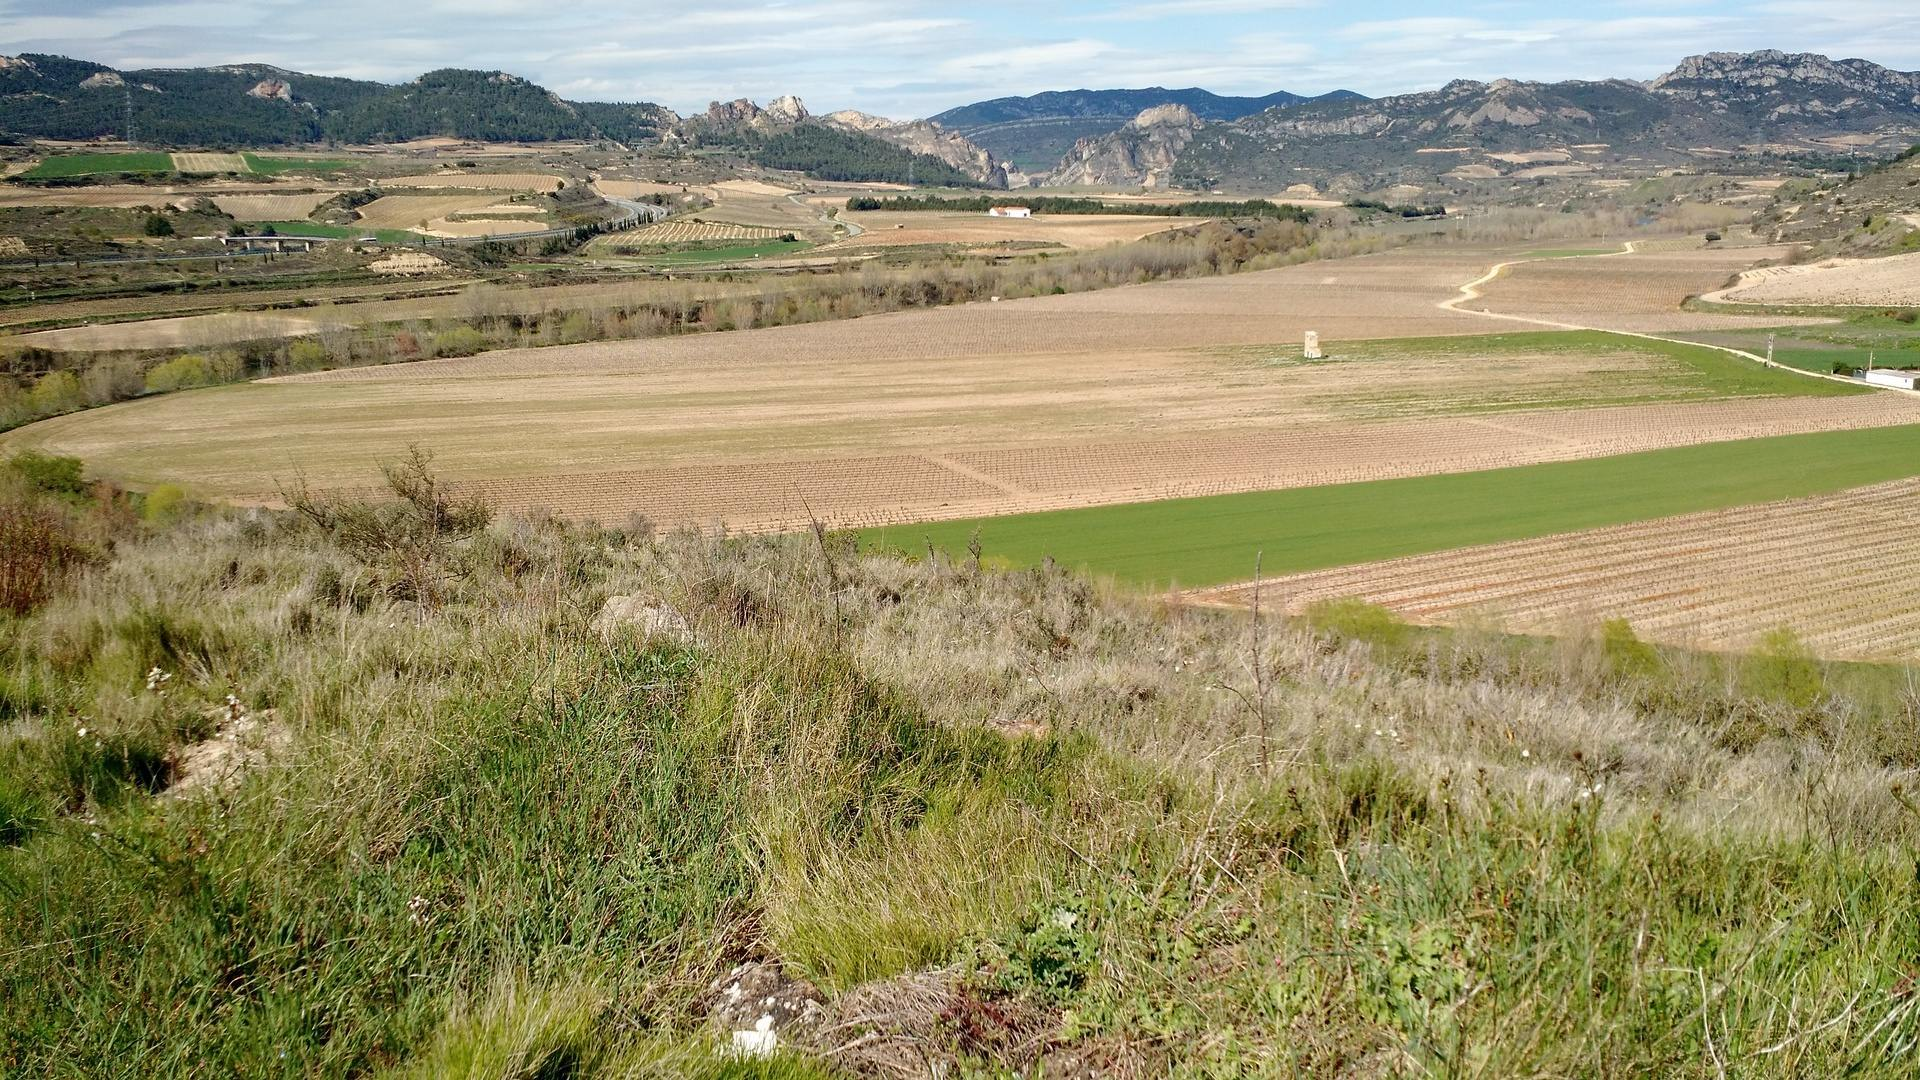 View from a plateau overlooking the Ebro